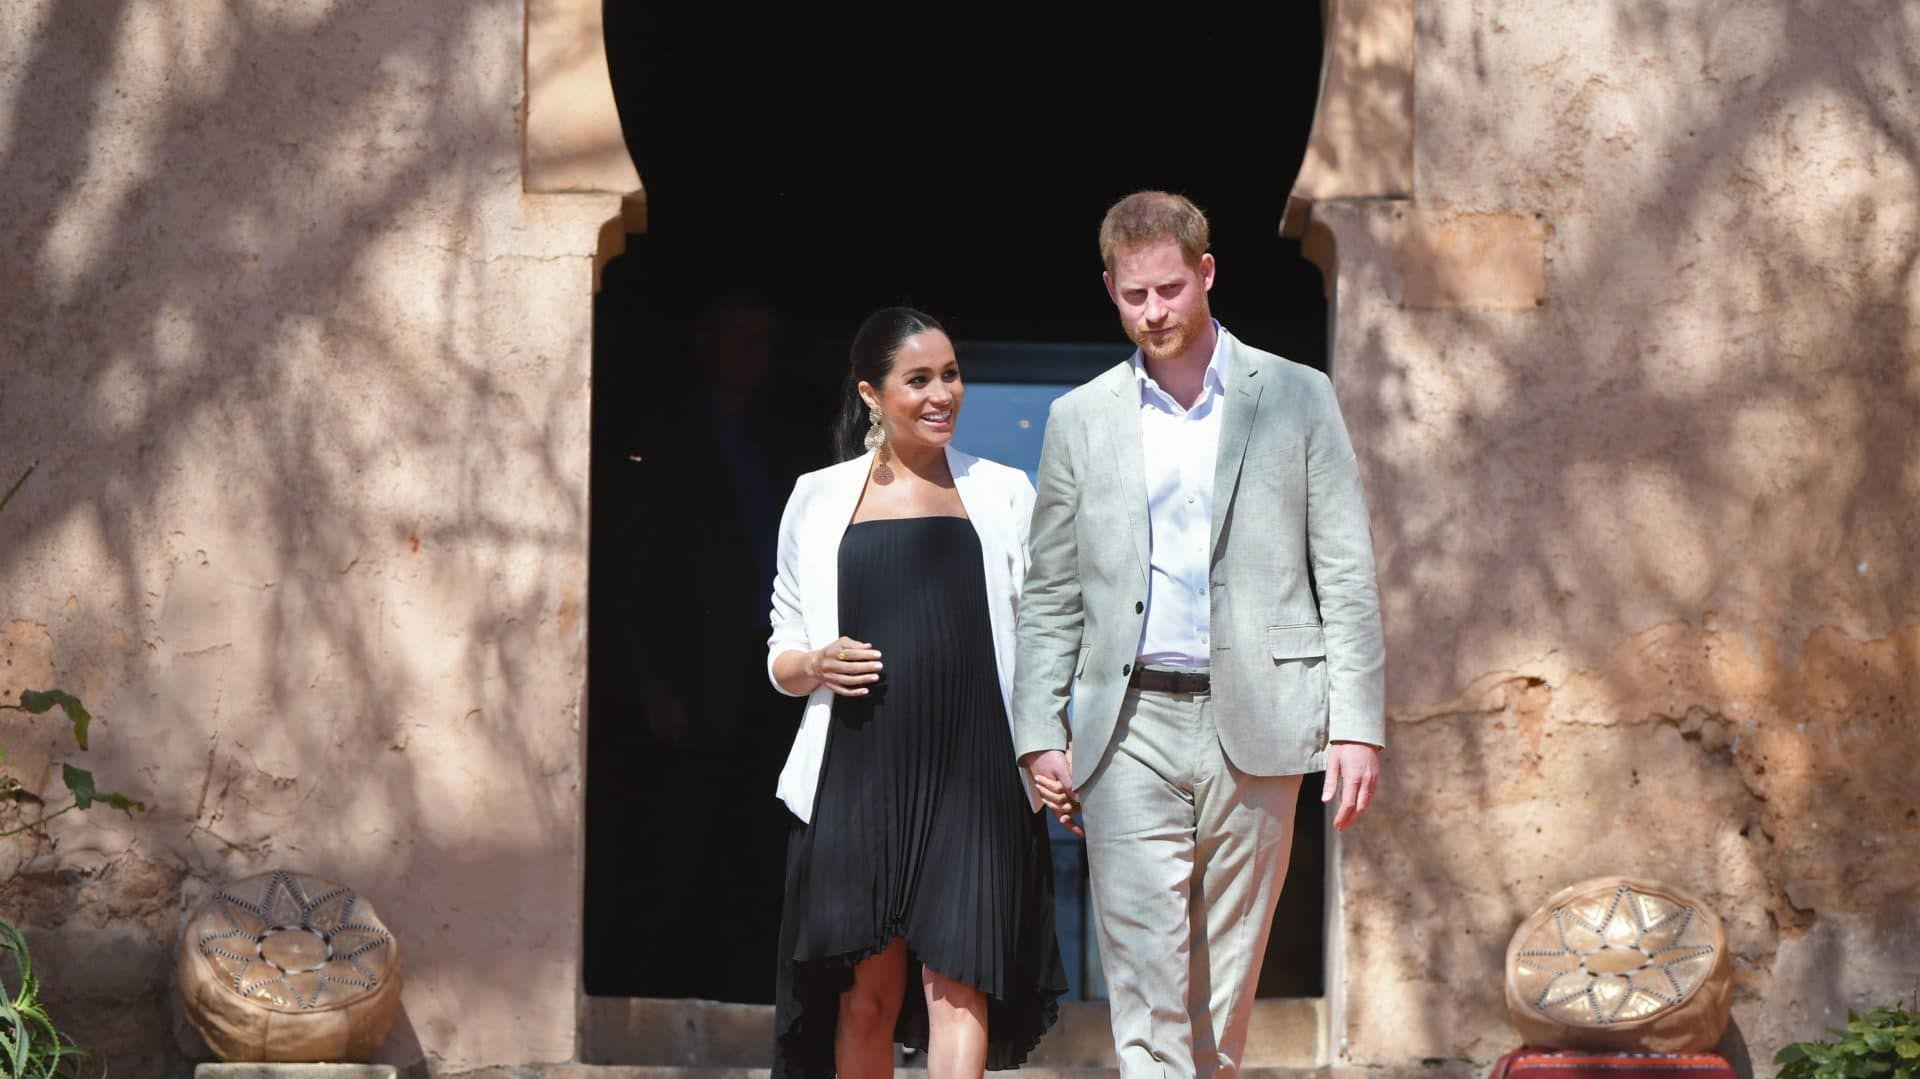 Piers Morgan Faces Backlash For Telling Meghan Markle To 'Go Back To America'